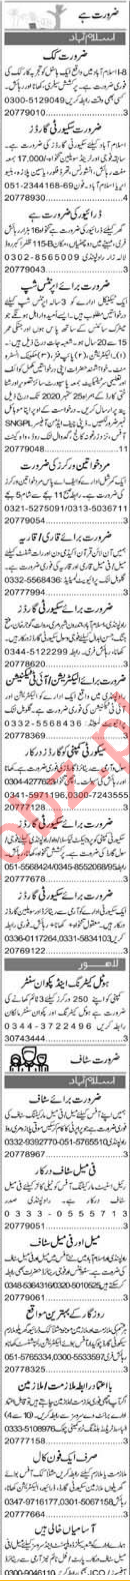 Drill Instructor & Receptionist Jobs 2020 in Islamabad